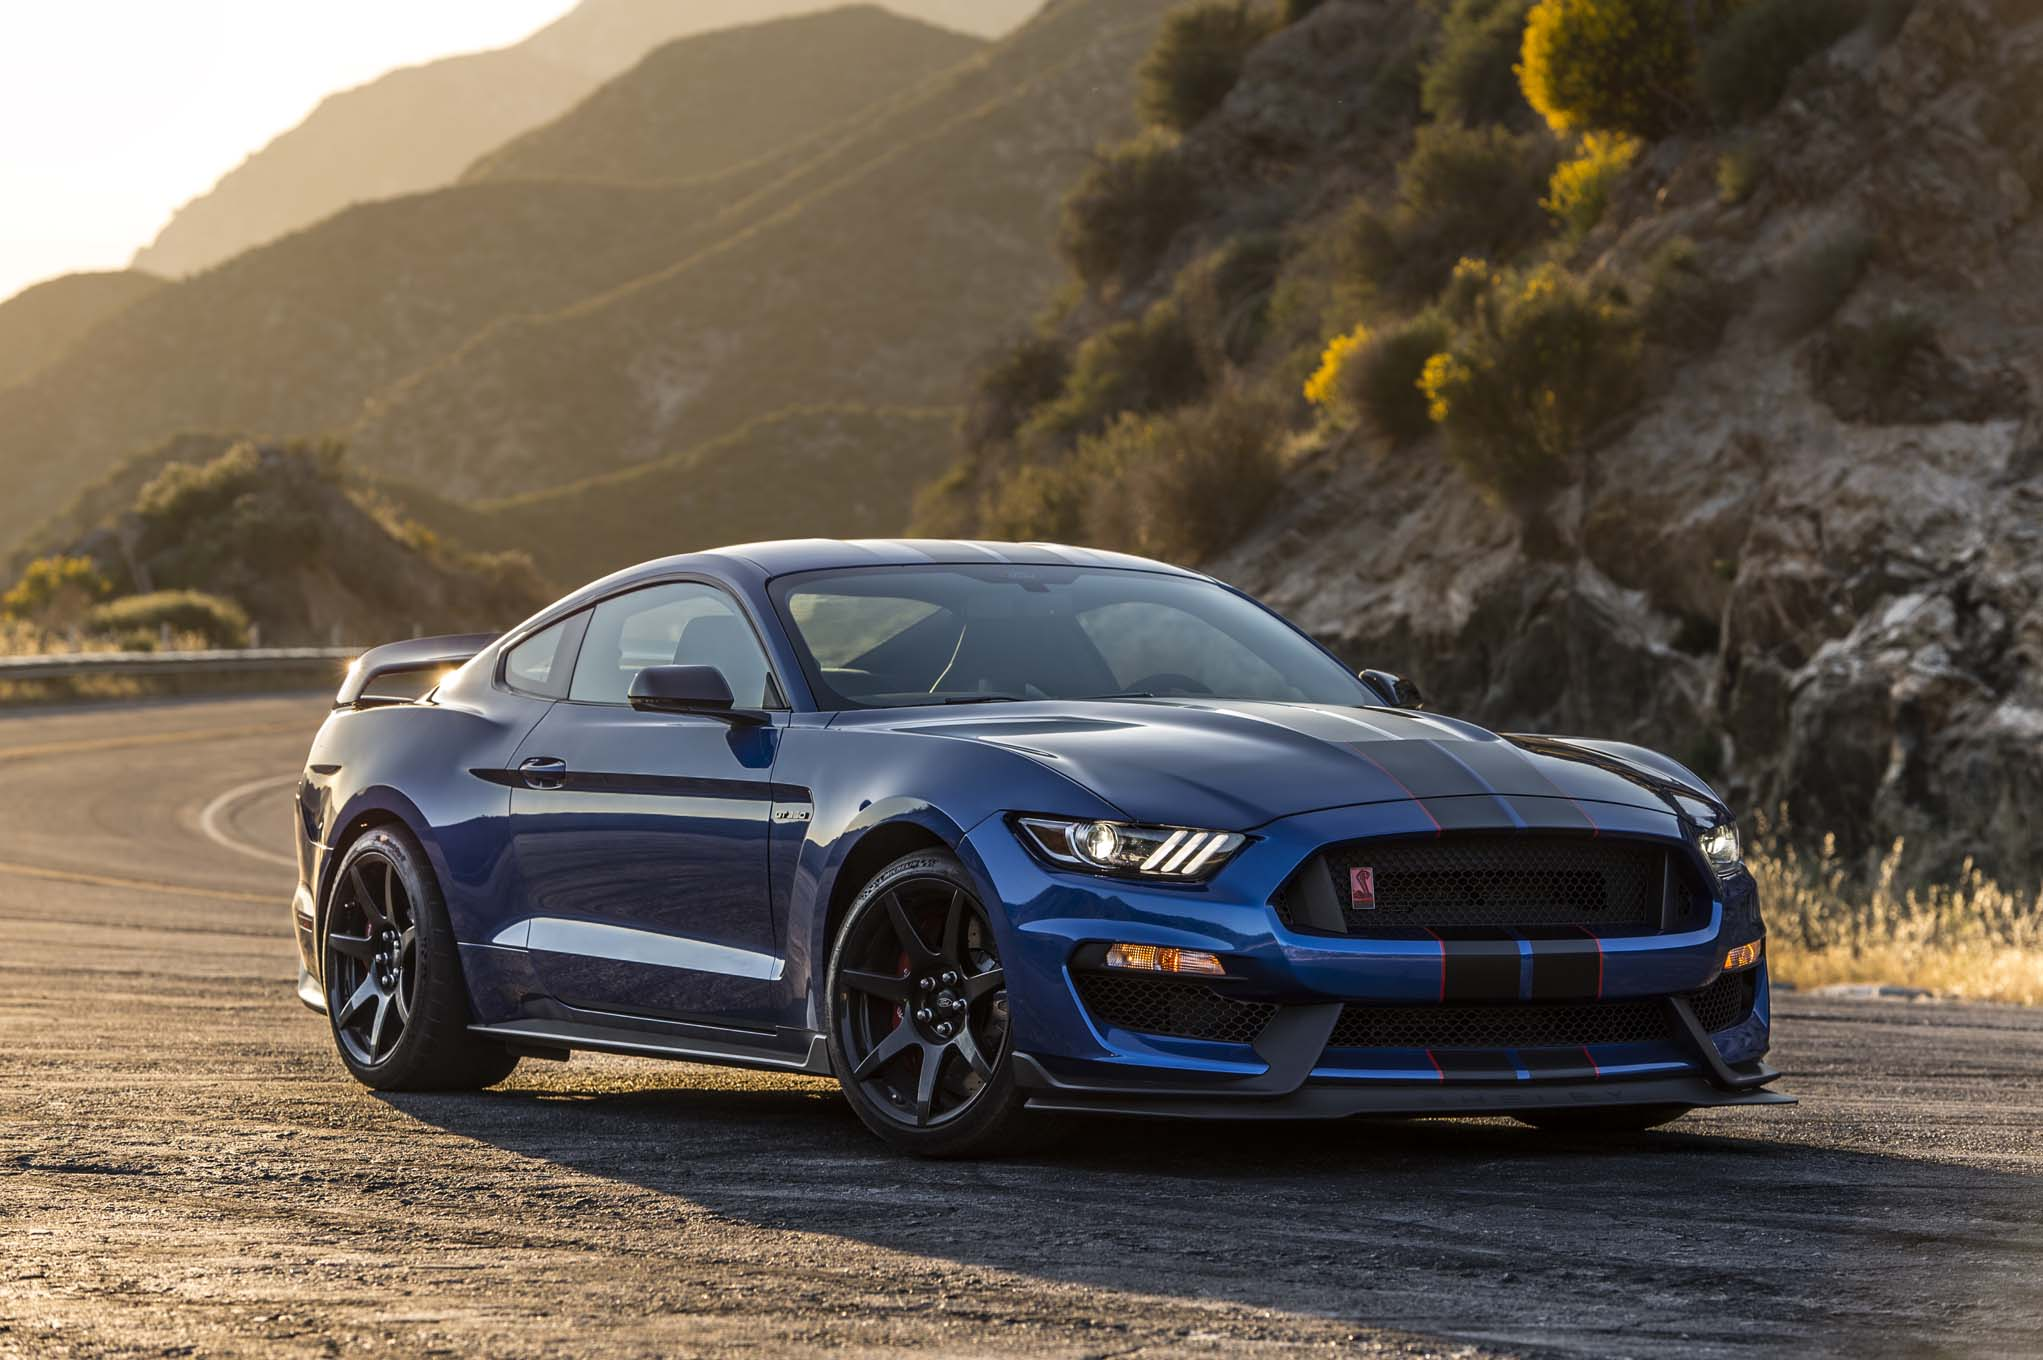 Shelby mustang photo - 4